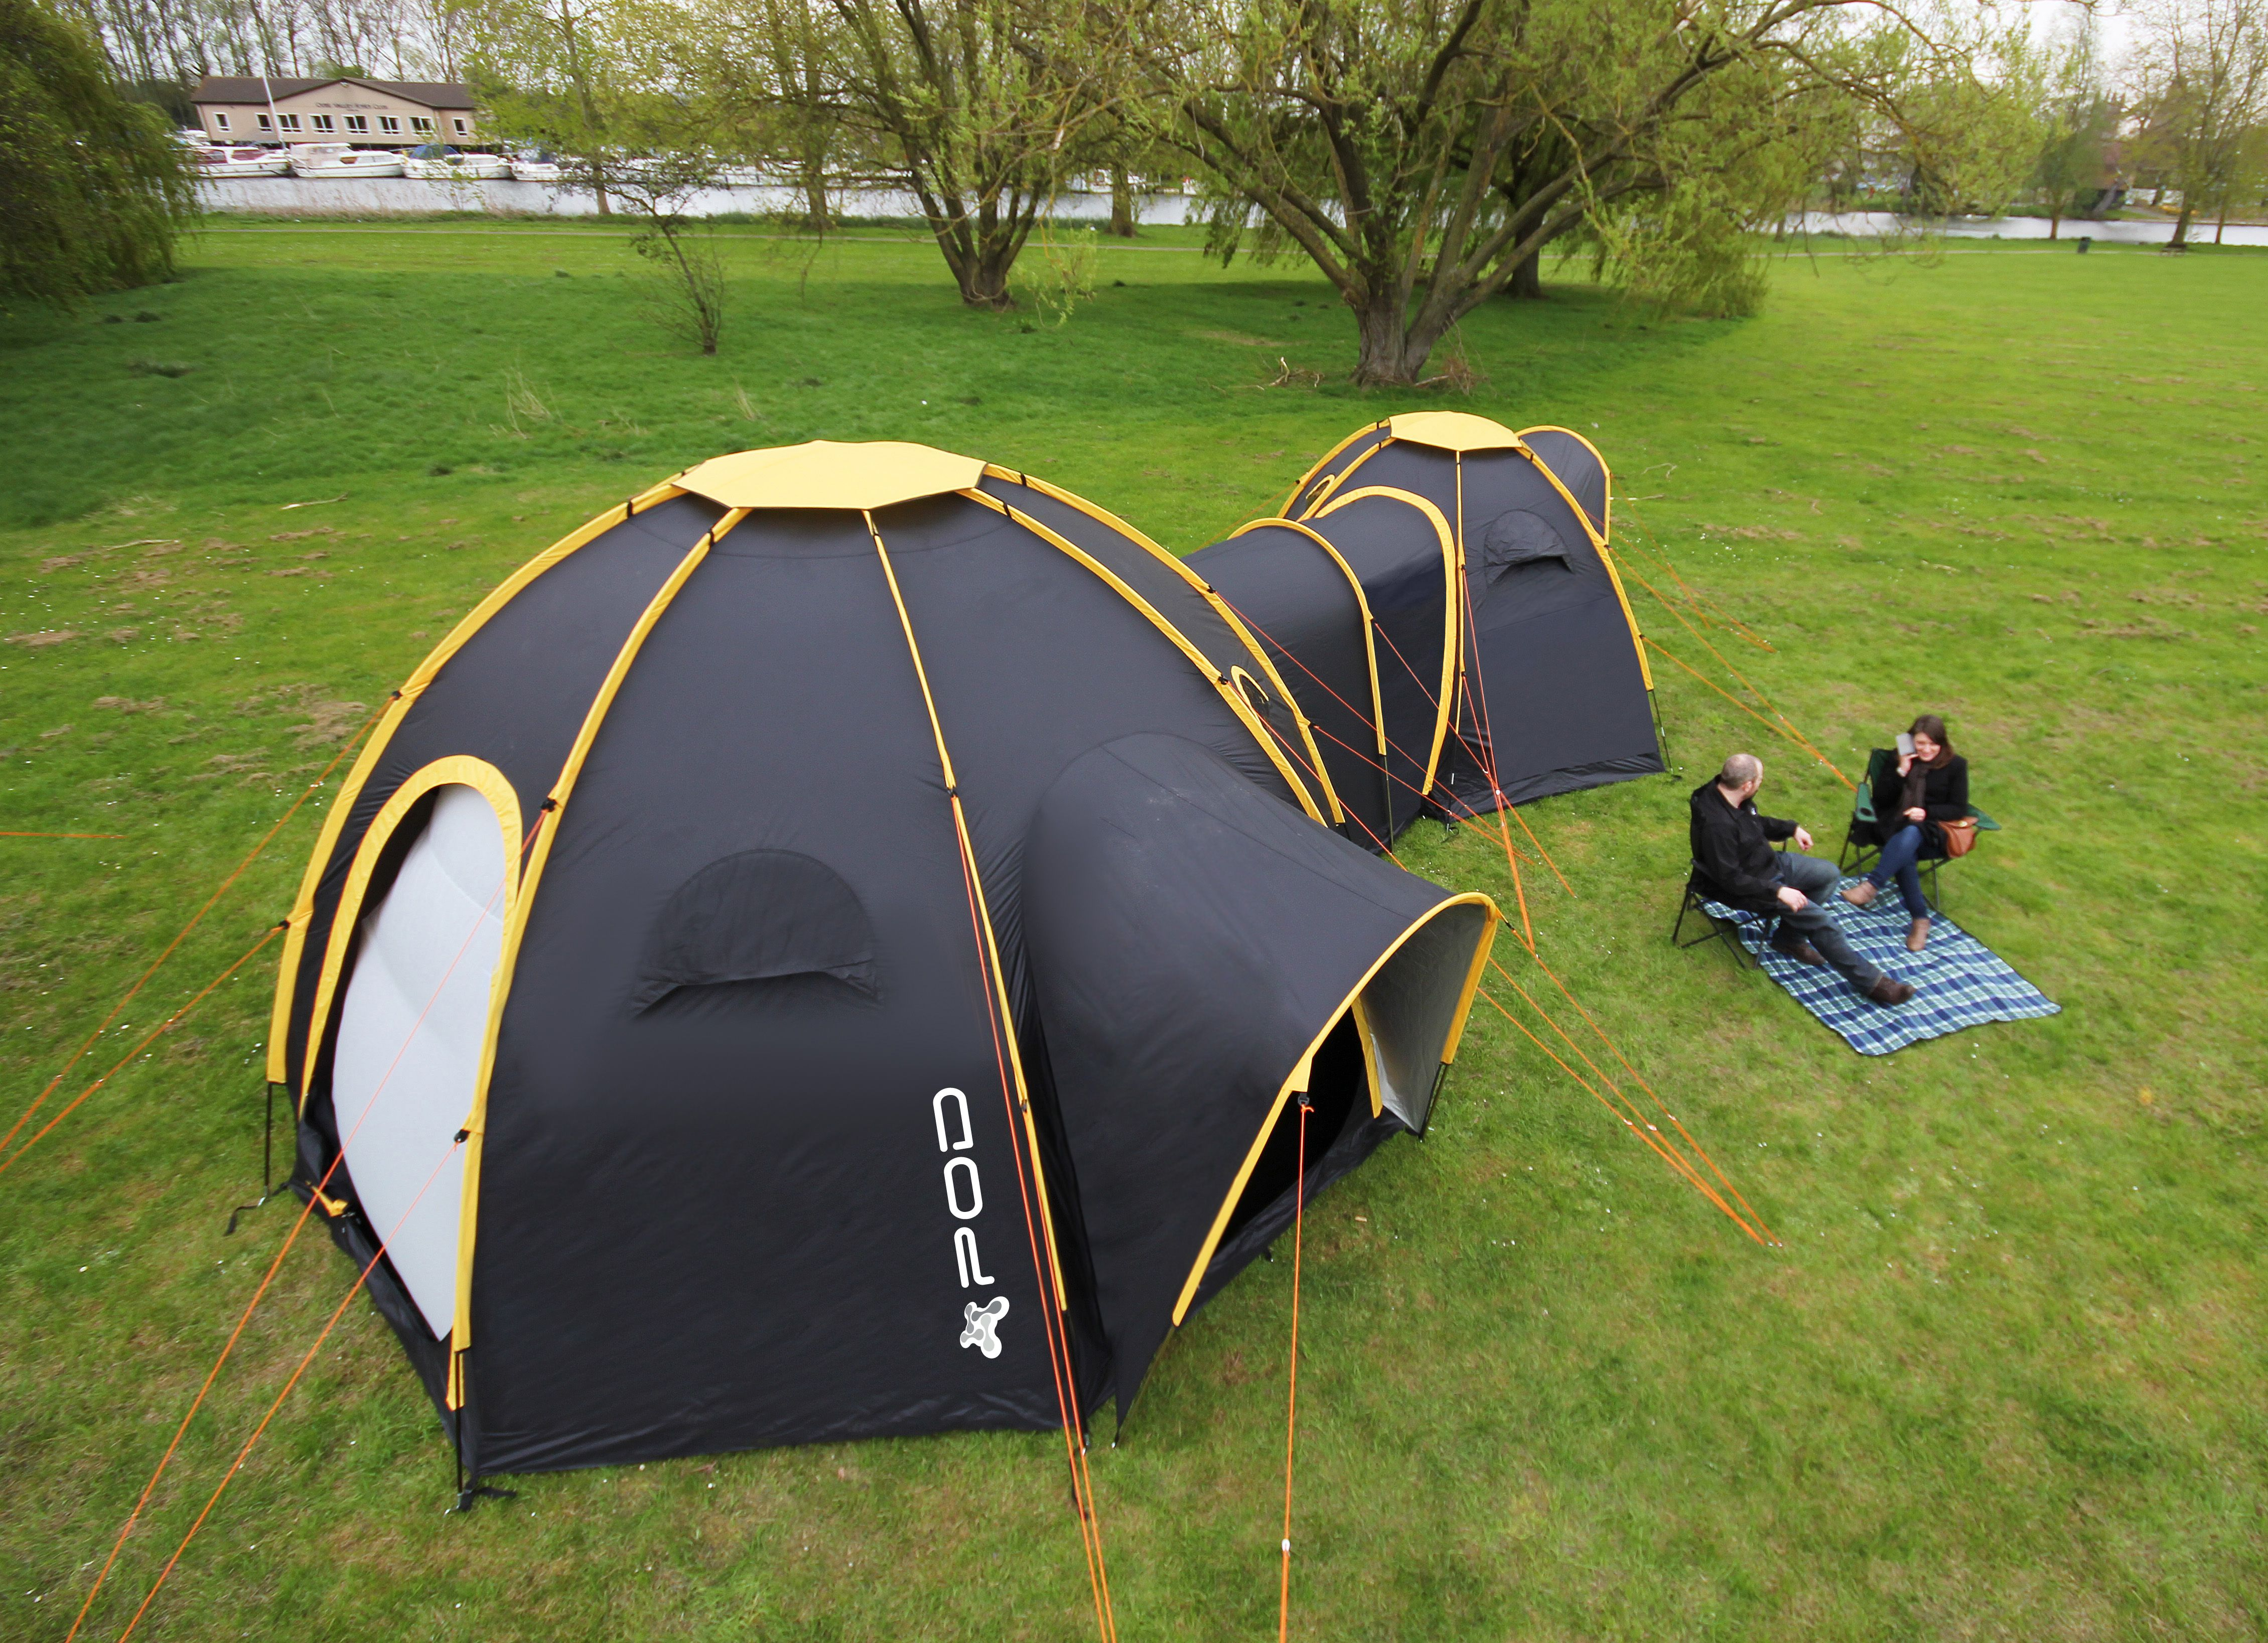 nice connecting huge tents by PODtents & nice connecting huge tents by PODtents | Travelling tools and tips ...